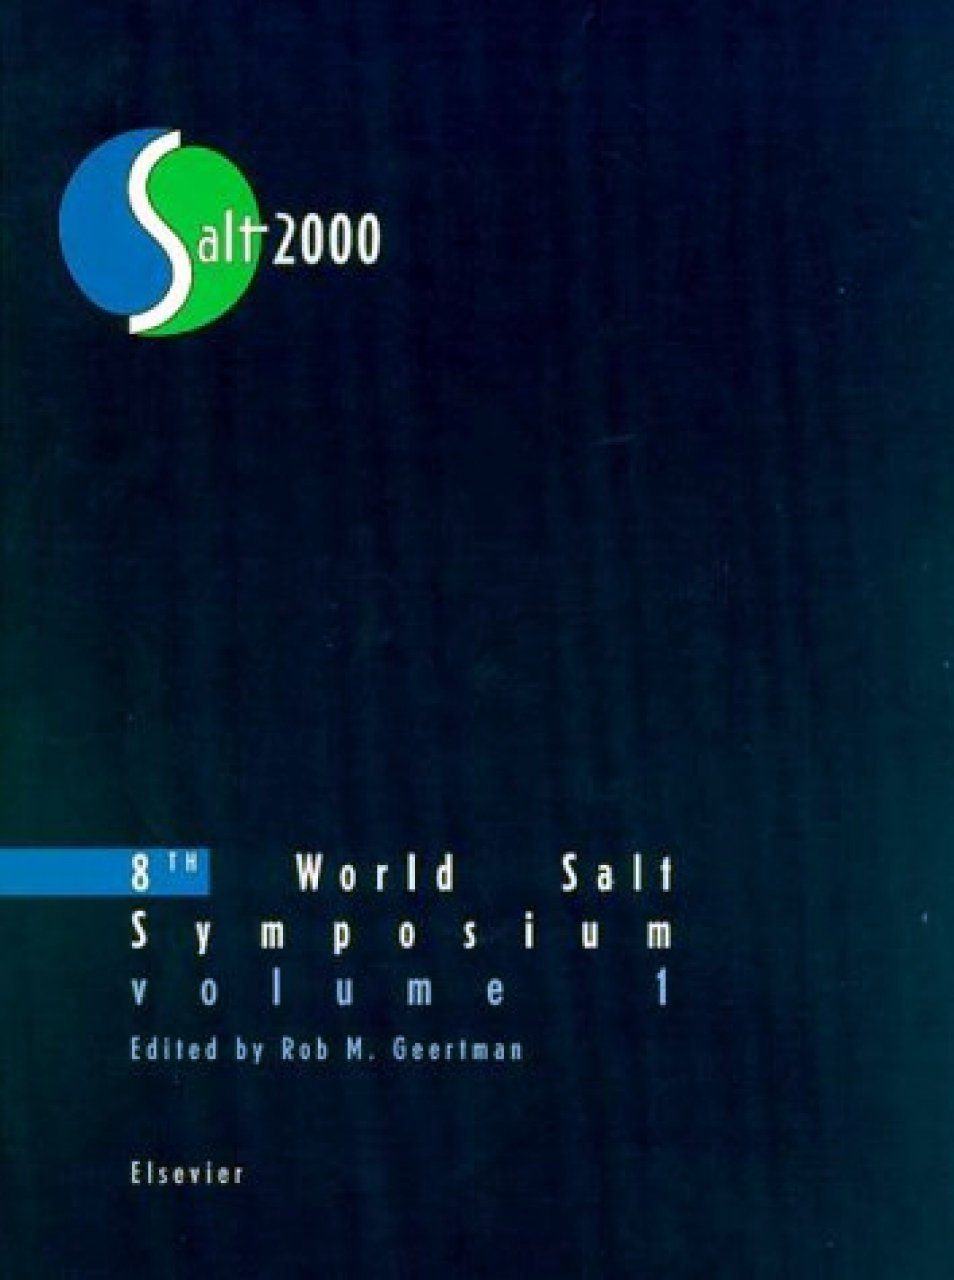 8th World Salts Symposium